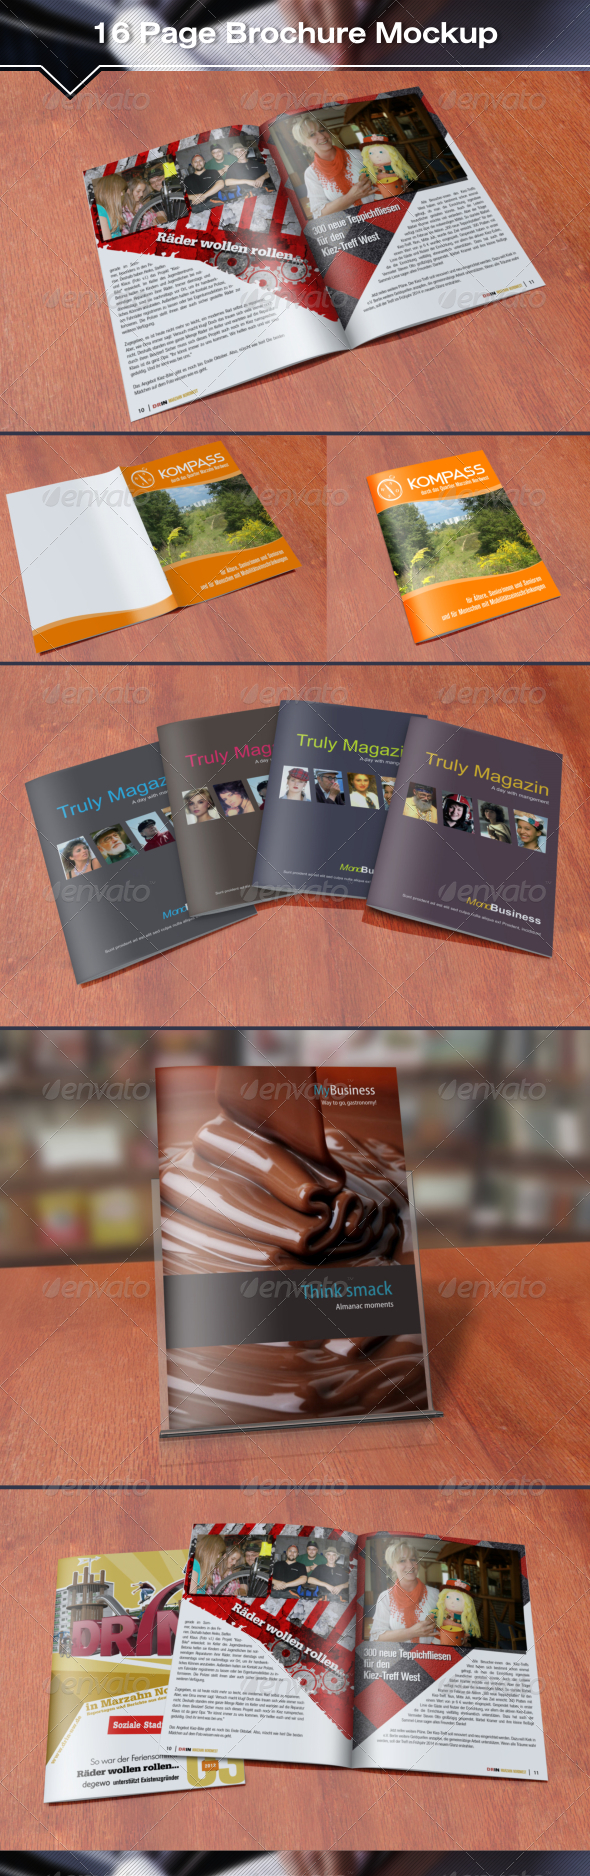 GraphicRiver 16 Page Brochure Mockup 7279054